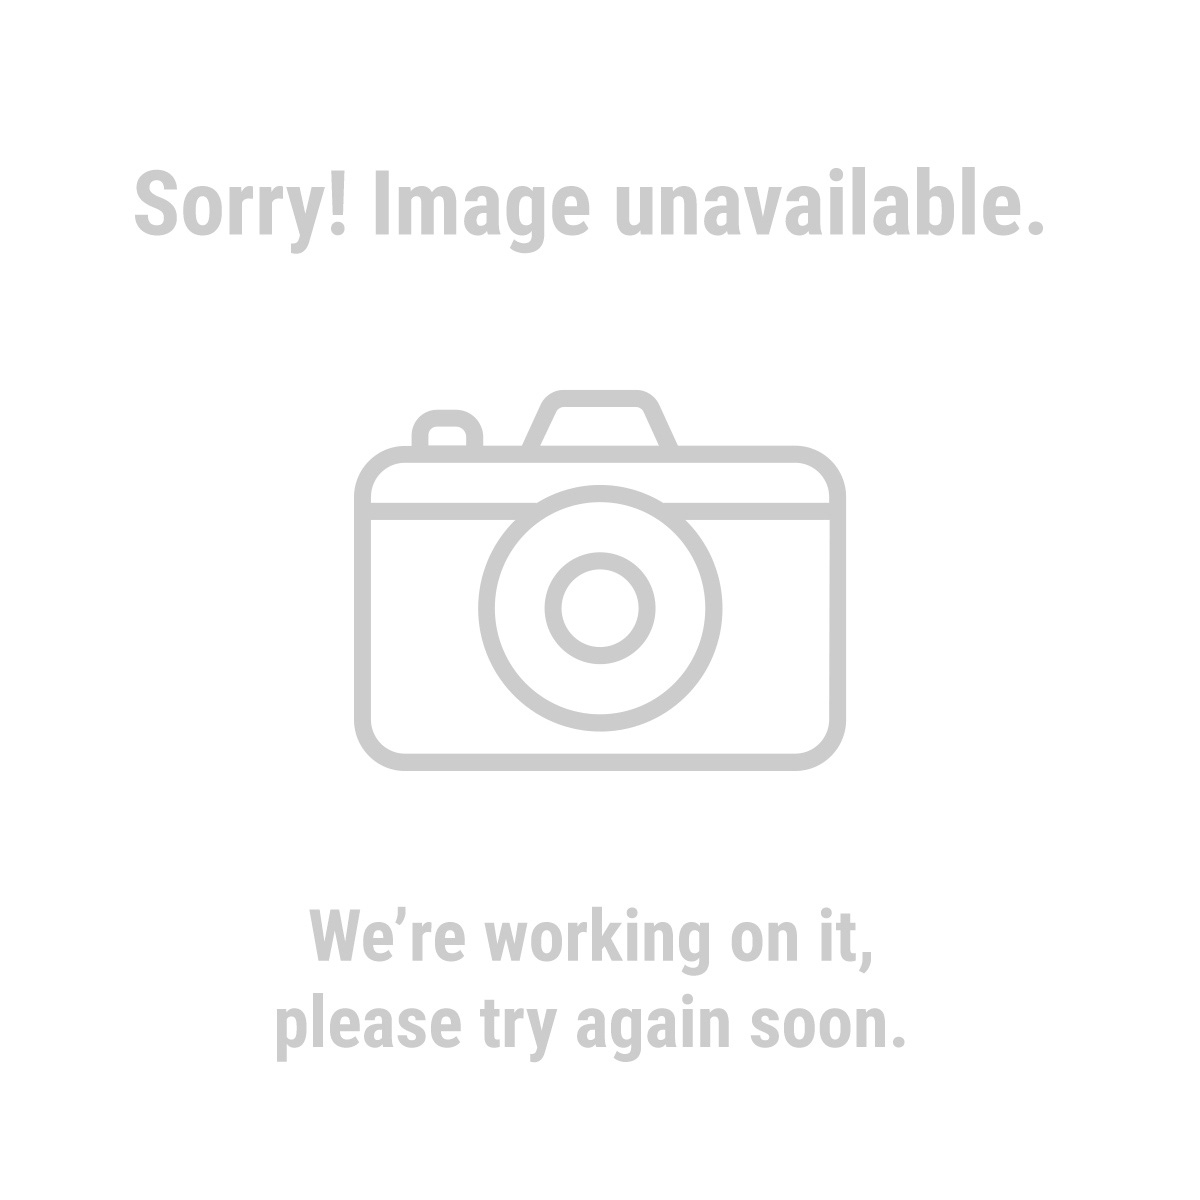 Warrior 95146 13 Piece Left-Hand Drill Bit Set